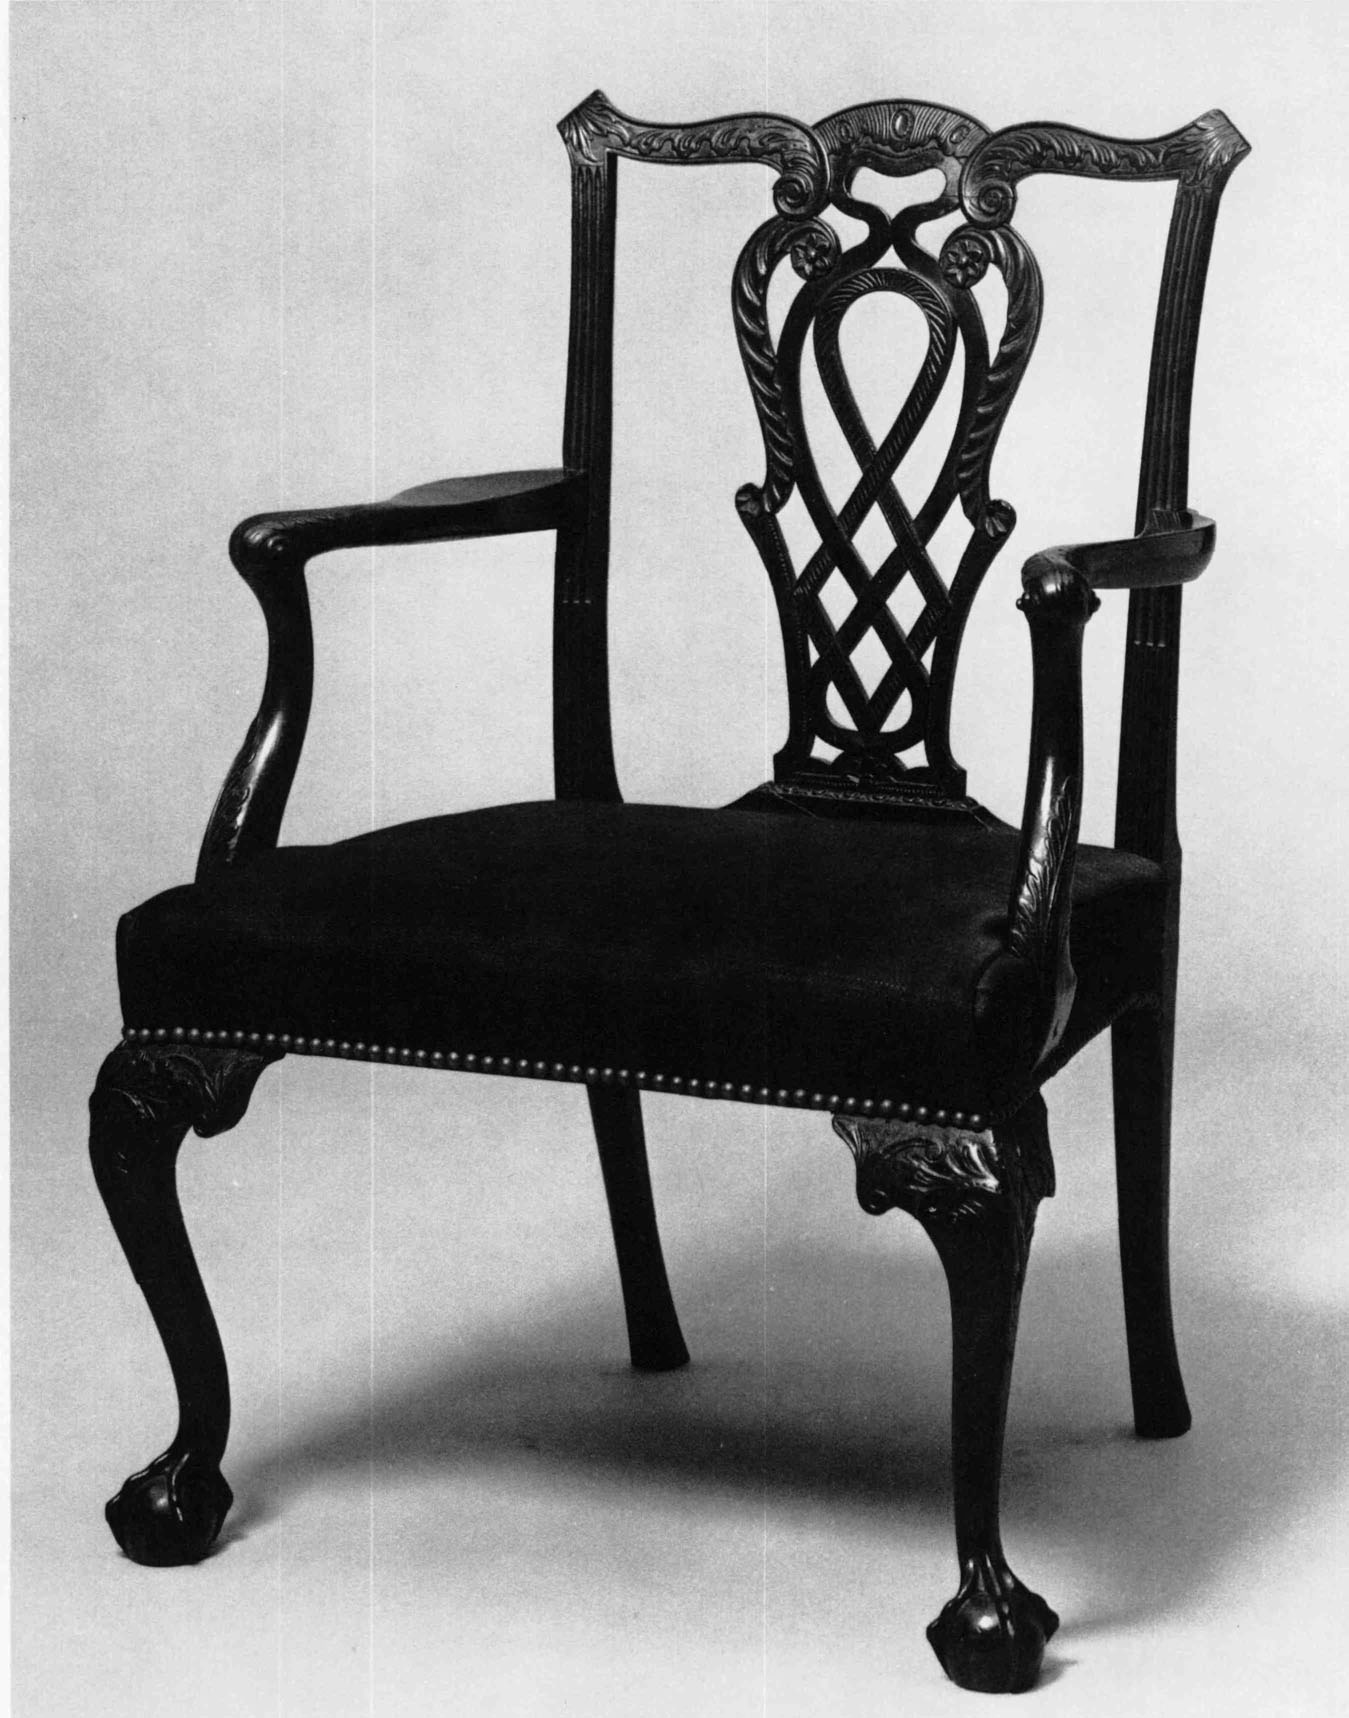 This israel sack american federal mahogany antique lolling arm chair - Armchair Boston Area C 1760 1780 Mahogany Maple And Birch H 37 Inches W 26 Inches D 199 16 Inches Yale University Art Gallery